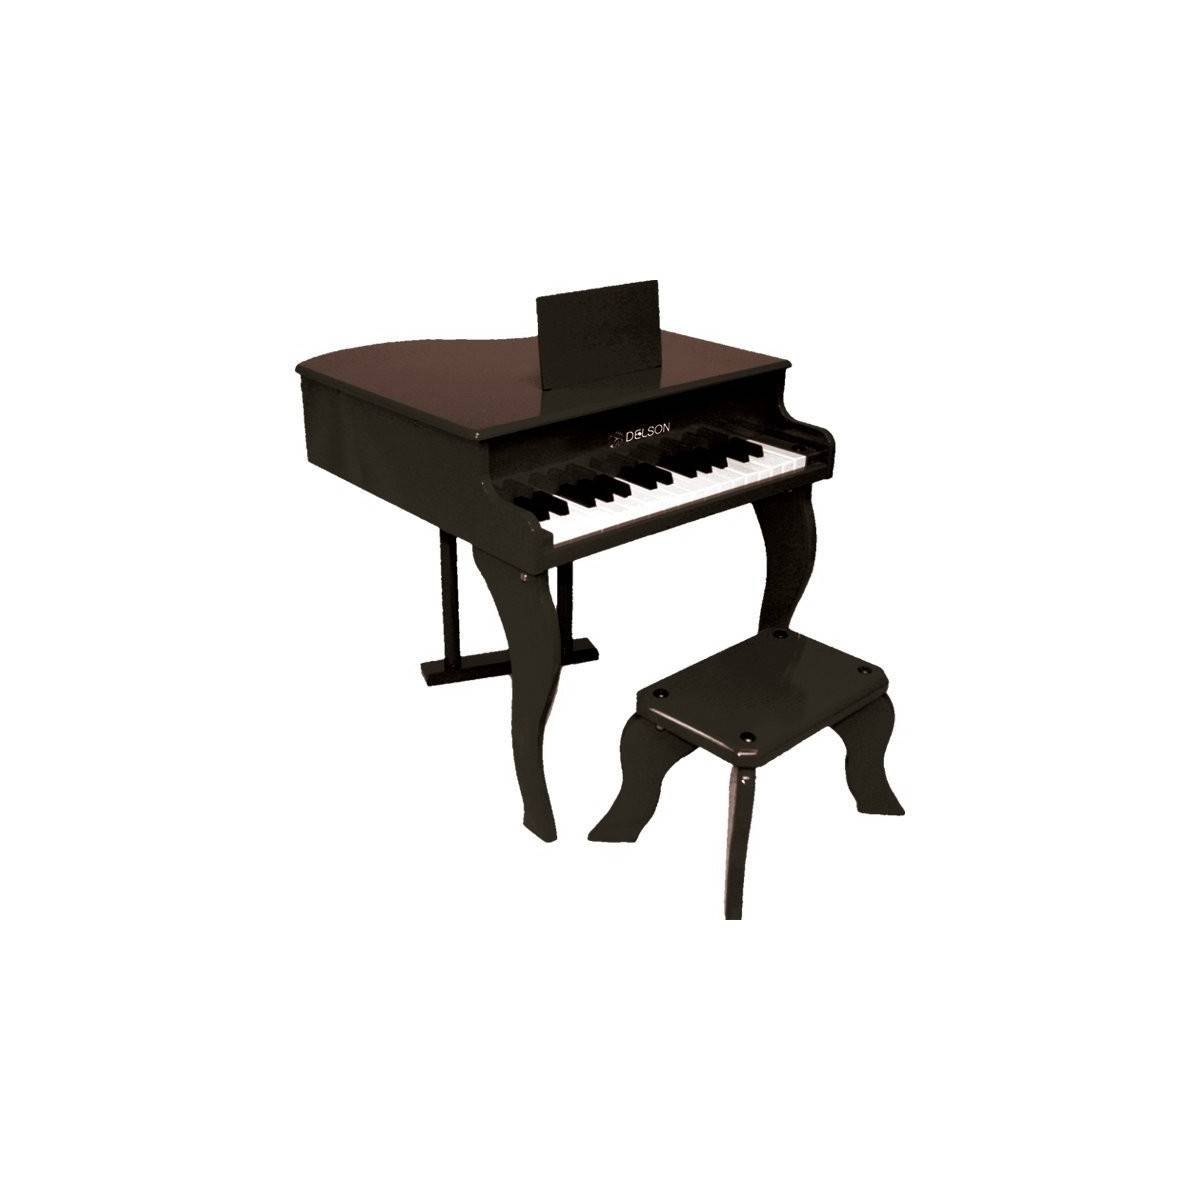 piano queue jouet noir neuf ebay. Black Bedroom Furniture Sets. Home Design Ideas